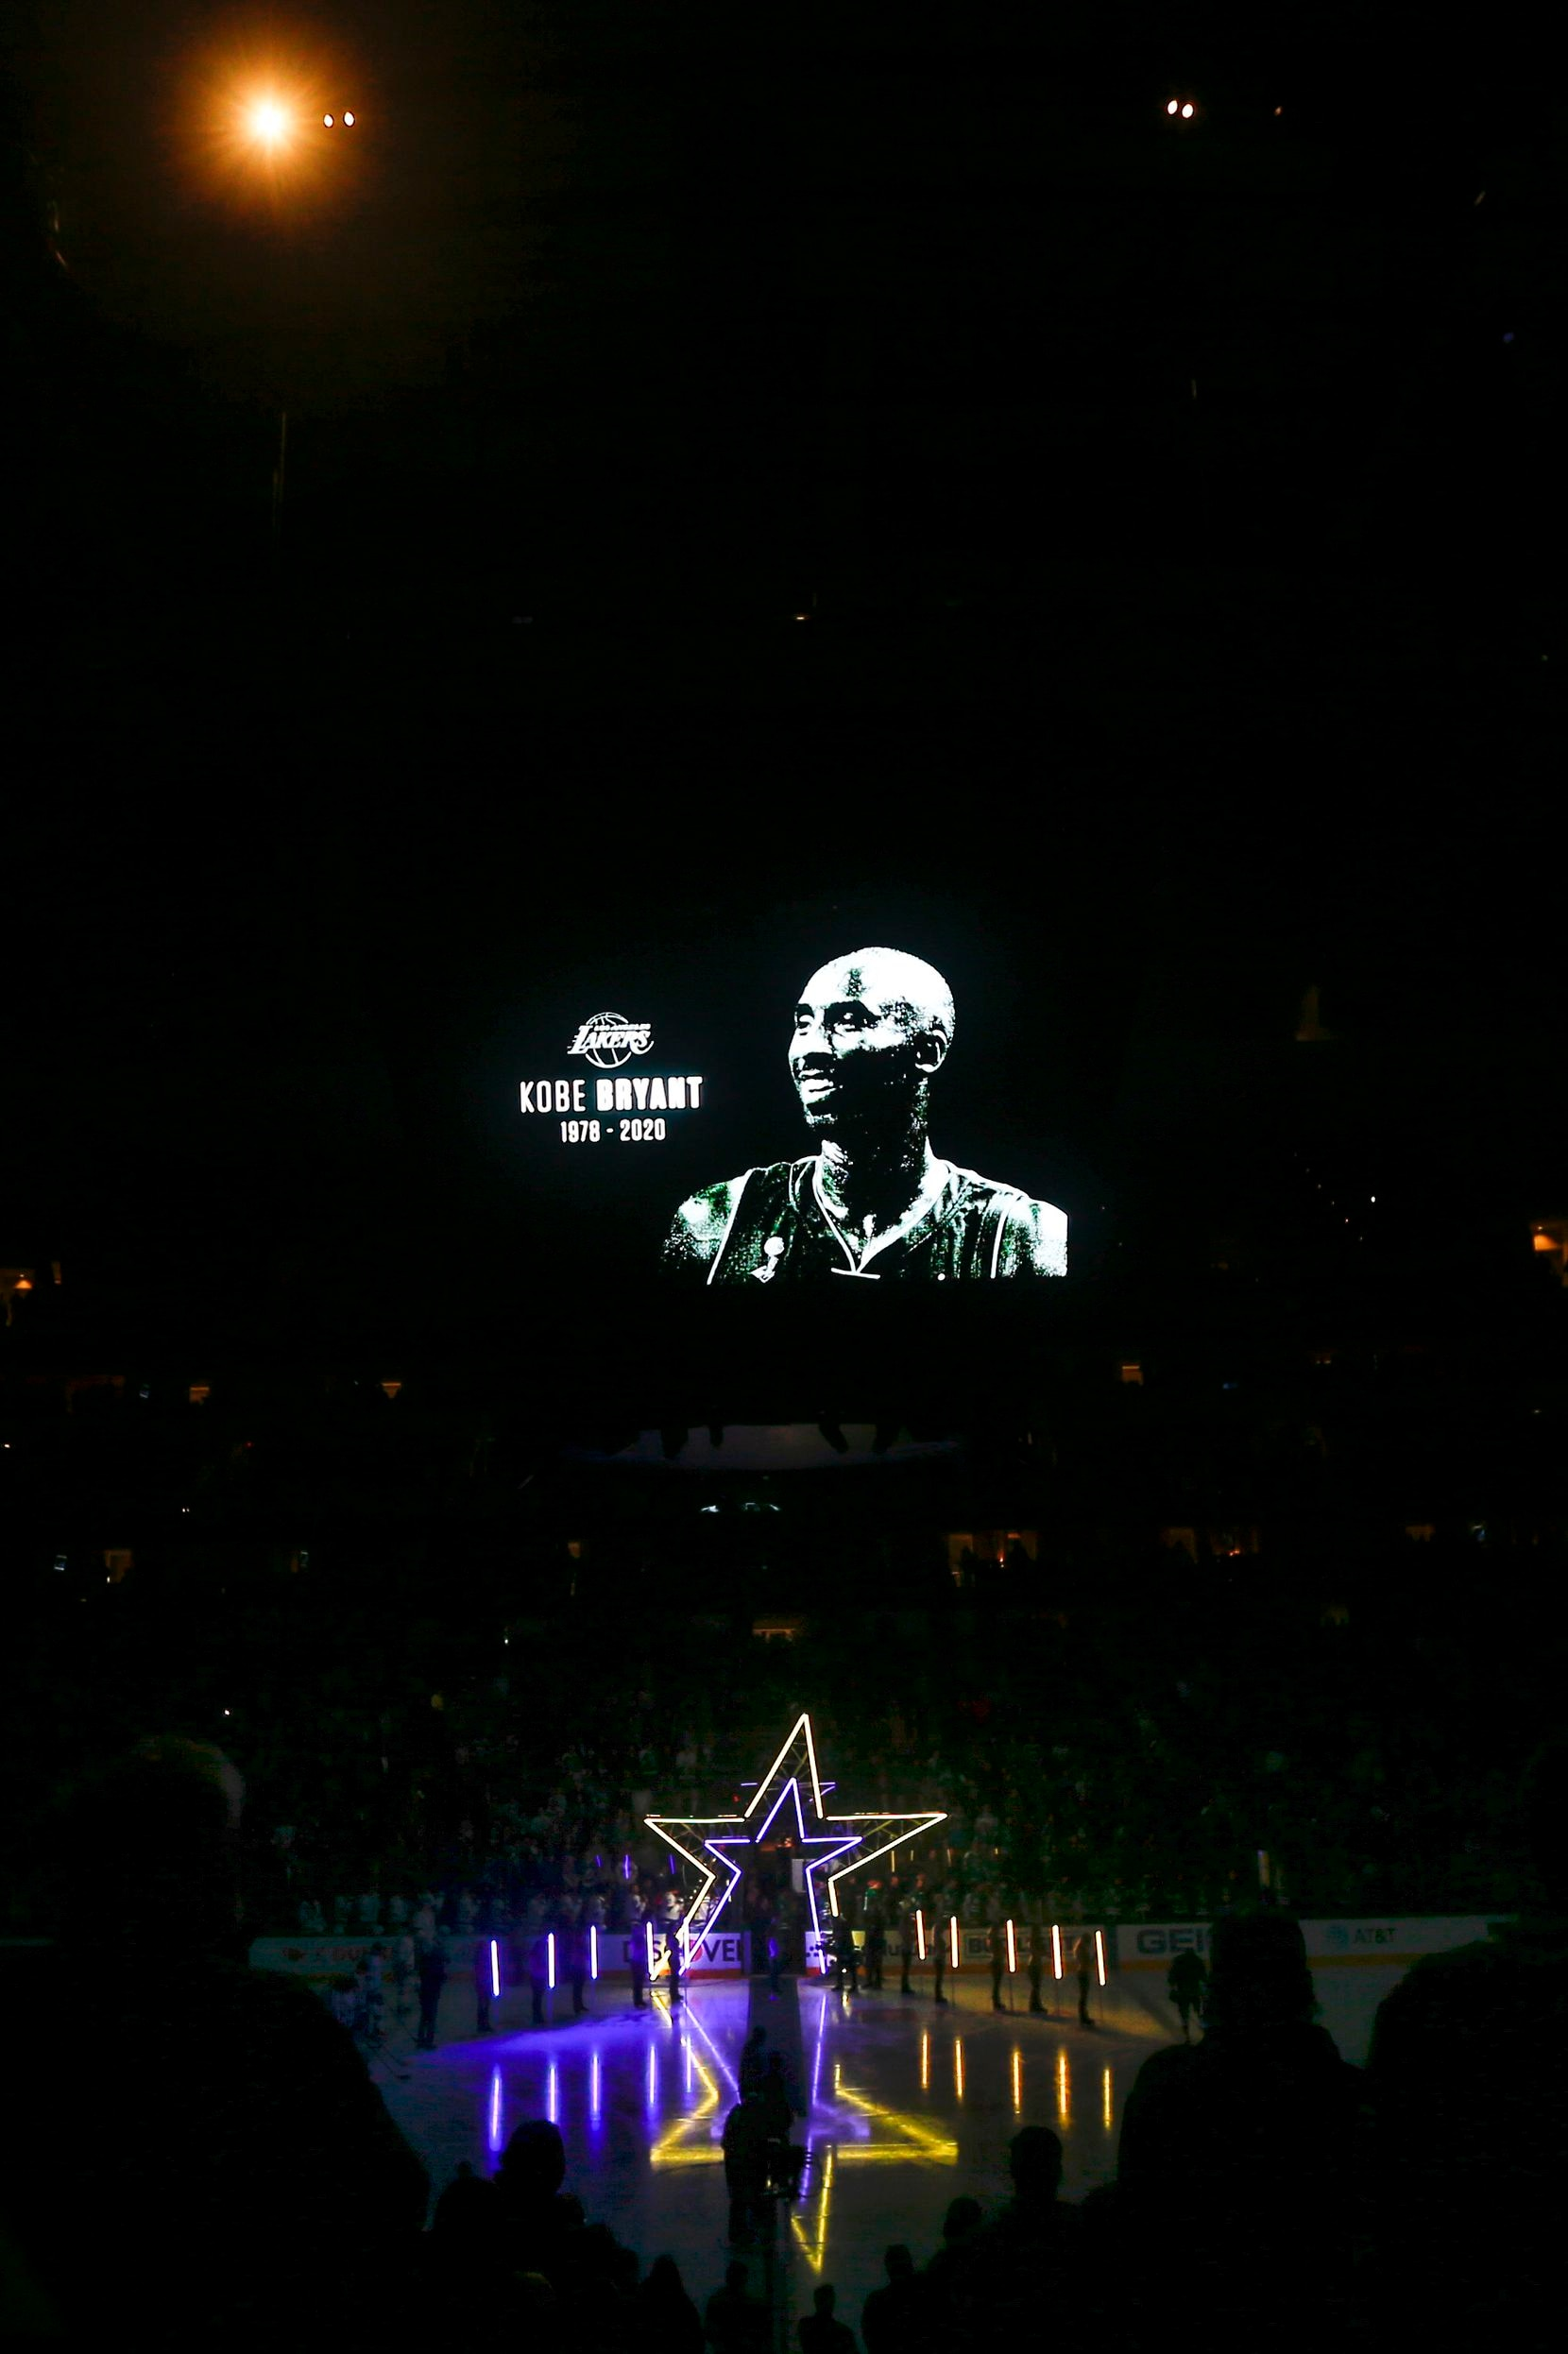 The Dallas Stars honor Kobe and Gianna Bryant, who were killed in a helicopter crash Sunday, prior to a NHL matchup between the Dallas Stars and the Tampa Bay Lightning on Monday, Jan. 27, 2020 at American Airlines Center in Dallas.